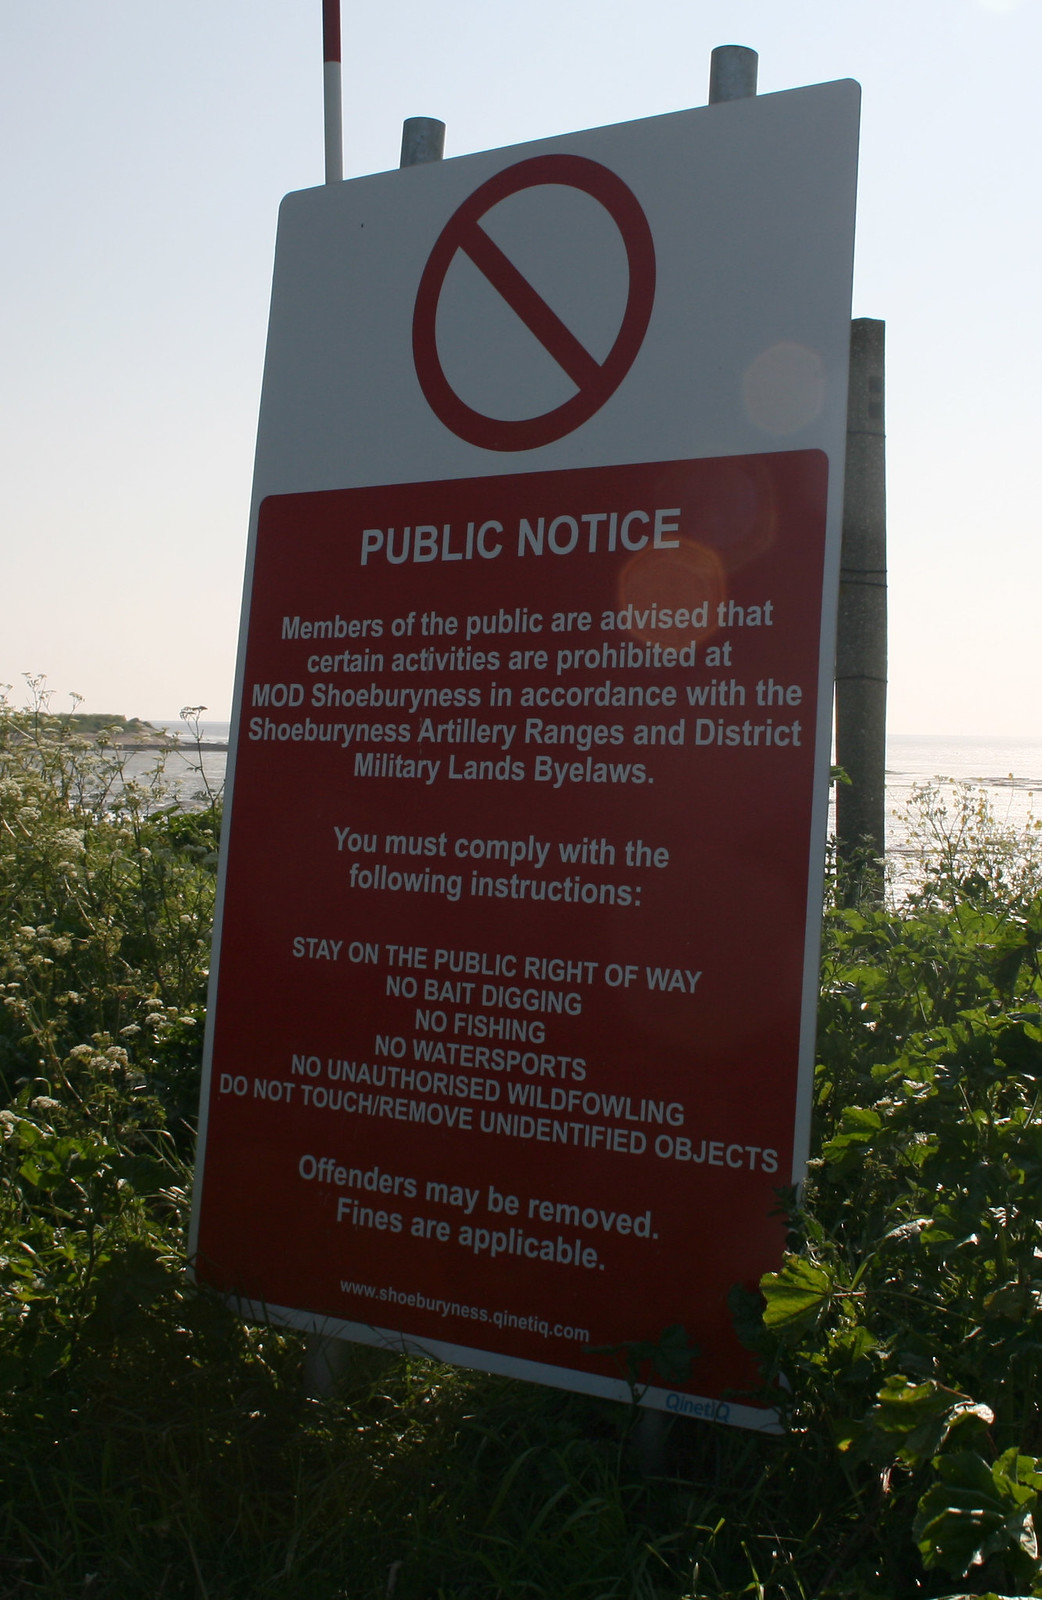 """The Broomway warning notice The Broomway is a tidal byway out to Foulness Island over Maplin Sands at the mouth of the Thames estuary. The route is so called because it used to be marked by branches of Broom placed at regular intervals on the route. However these have long since gone and the path is now unmarked. The path is dangerous because the tide comes in as fast as you can run and there are quick sands and mud in places if you stray off the route. Foulness Island itself is part of a firing range and most of it is """"out of bounds"""" to the public with the exception of the south east corner of the island, which has a couple of villages and farms. The only road to the island can only be used by MOD permit holders, so the only way for the public to reach the island is by boat or by walking the Broomway."""